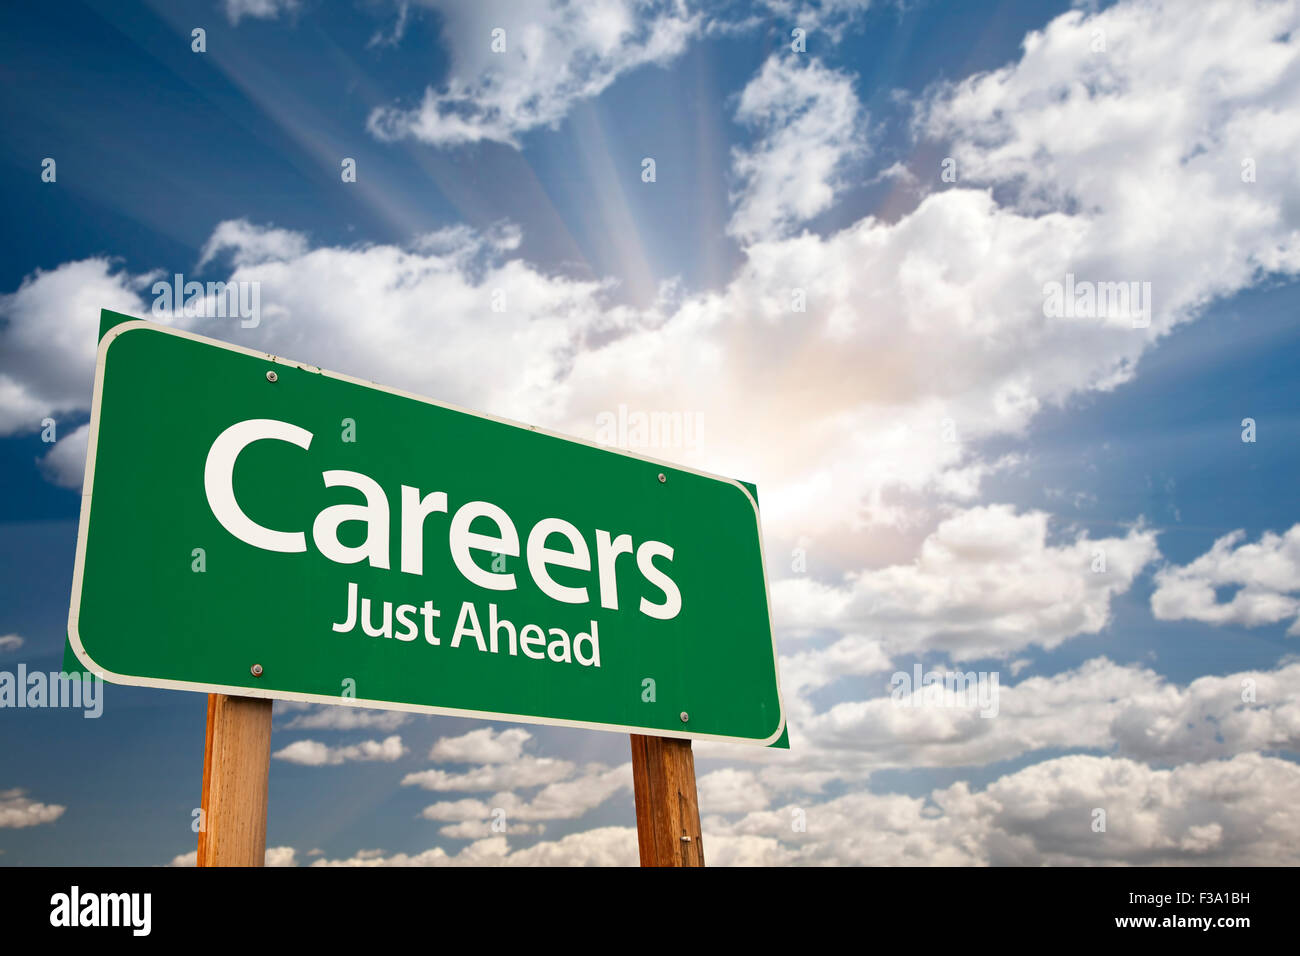 Careers Green Road Sign With Dramatic Clouds and Sky. - Stock Image